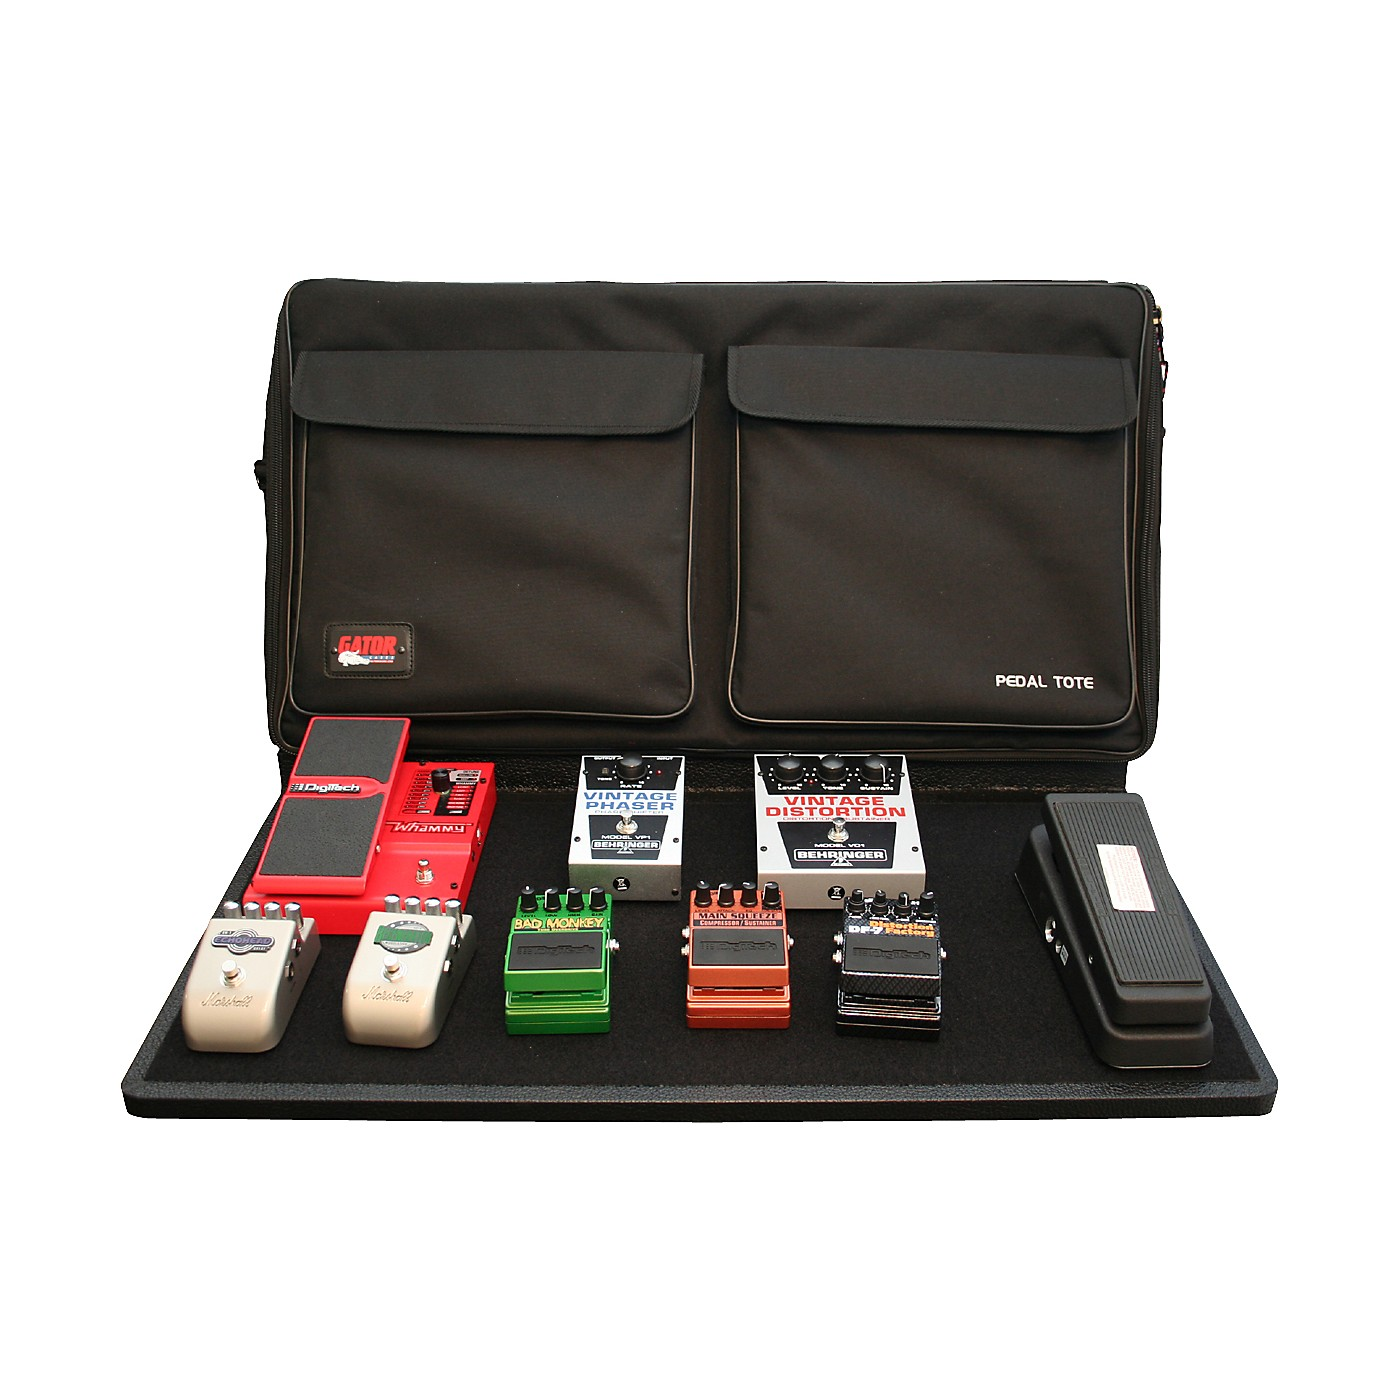 Gator GPT-PRO-PWR Powered Pedal Tote Pro Pedal Board with Bag thumbnail